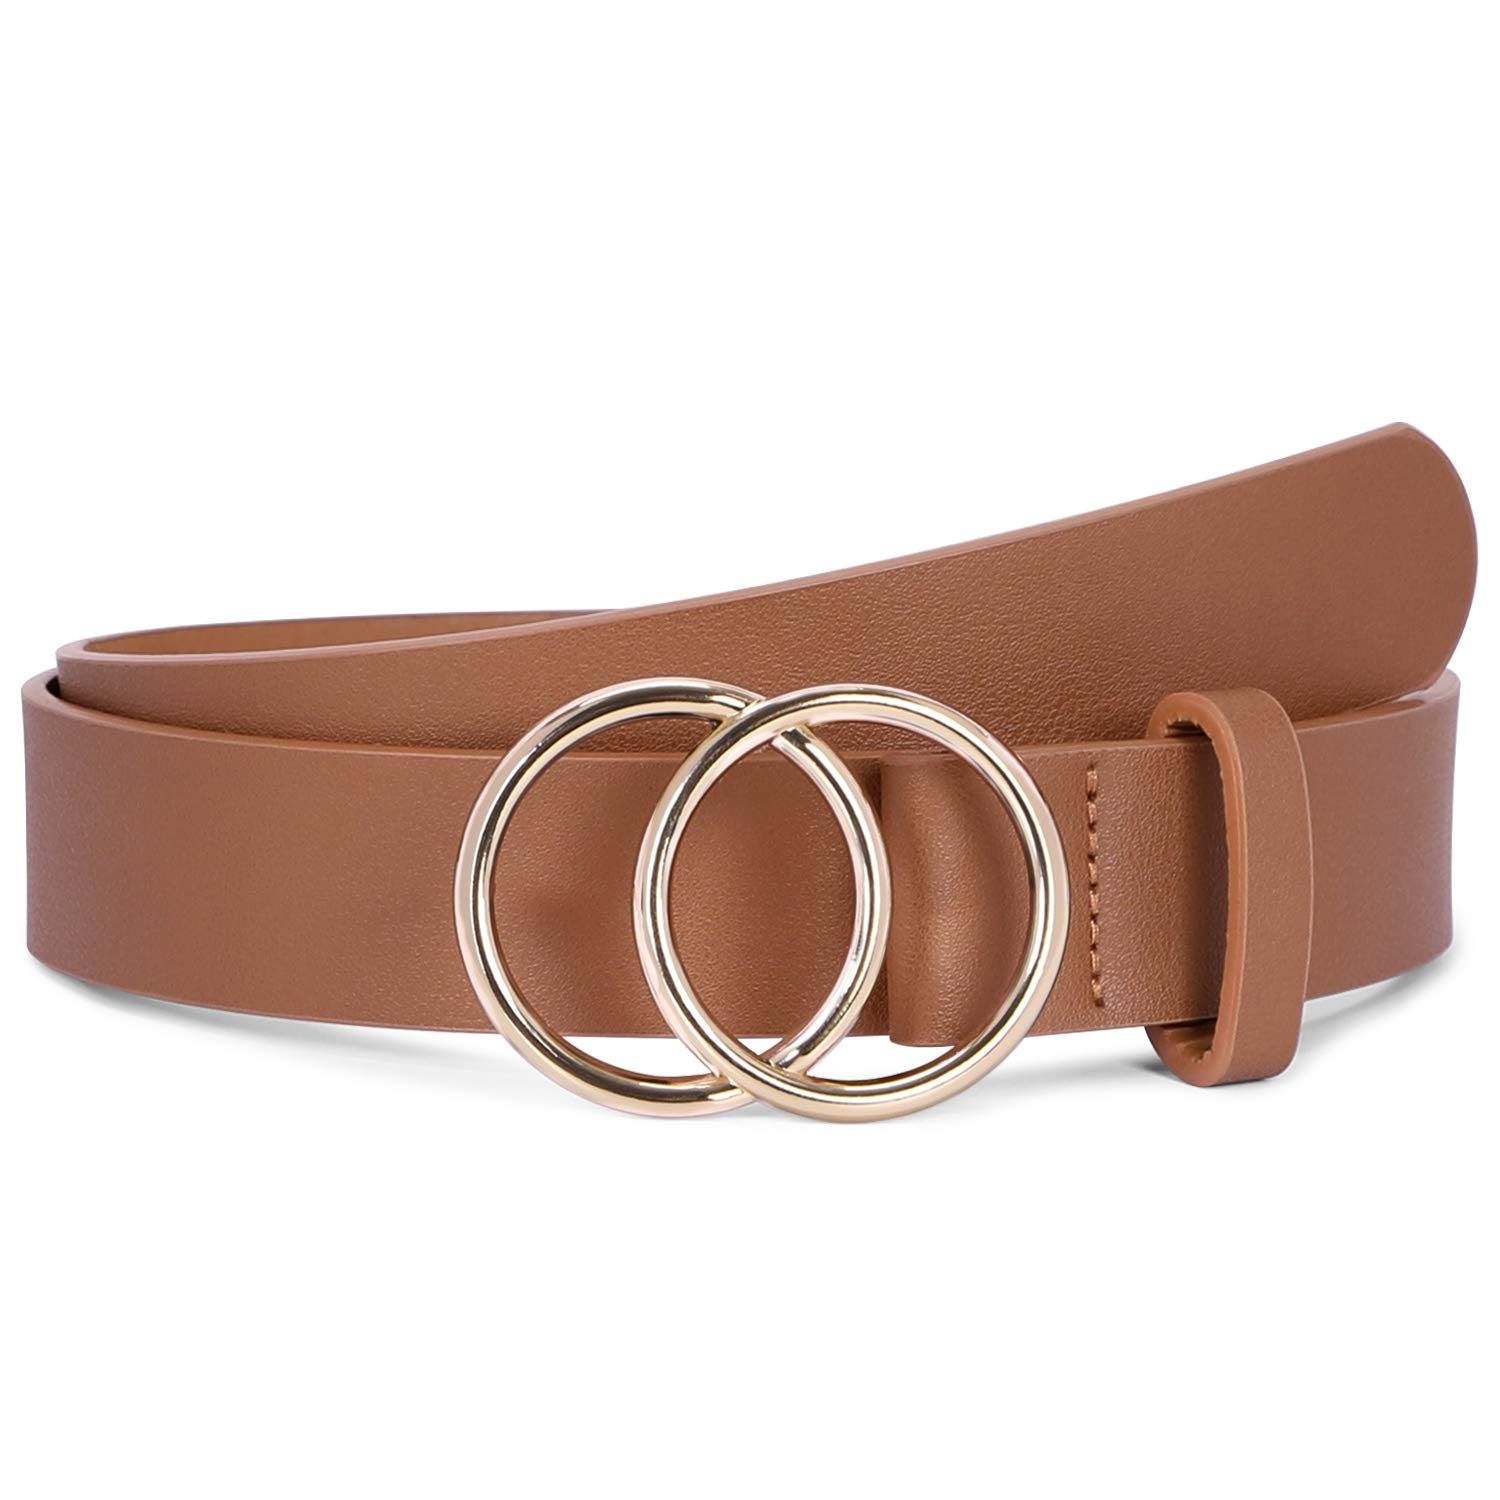 Women Brown Leather Belt for Jeans,Fashion Belts for Women With Gold Double Ring Buckle